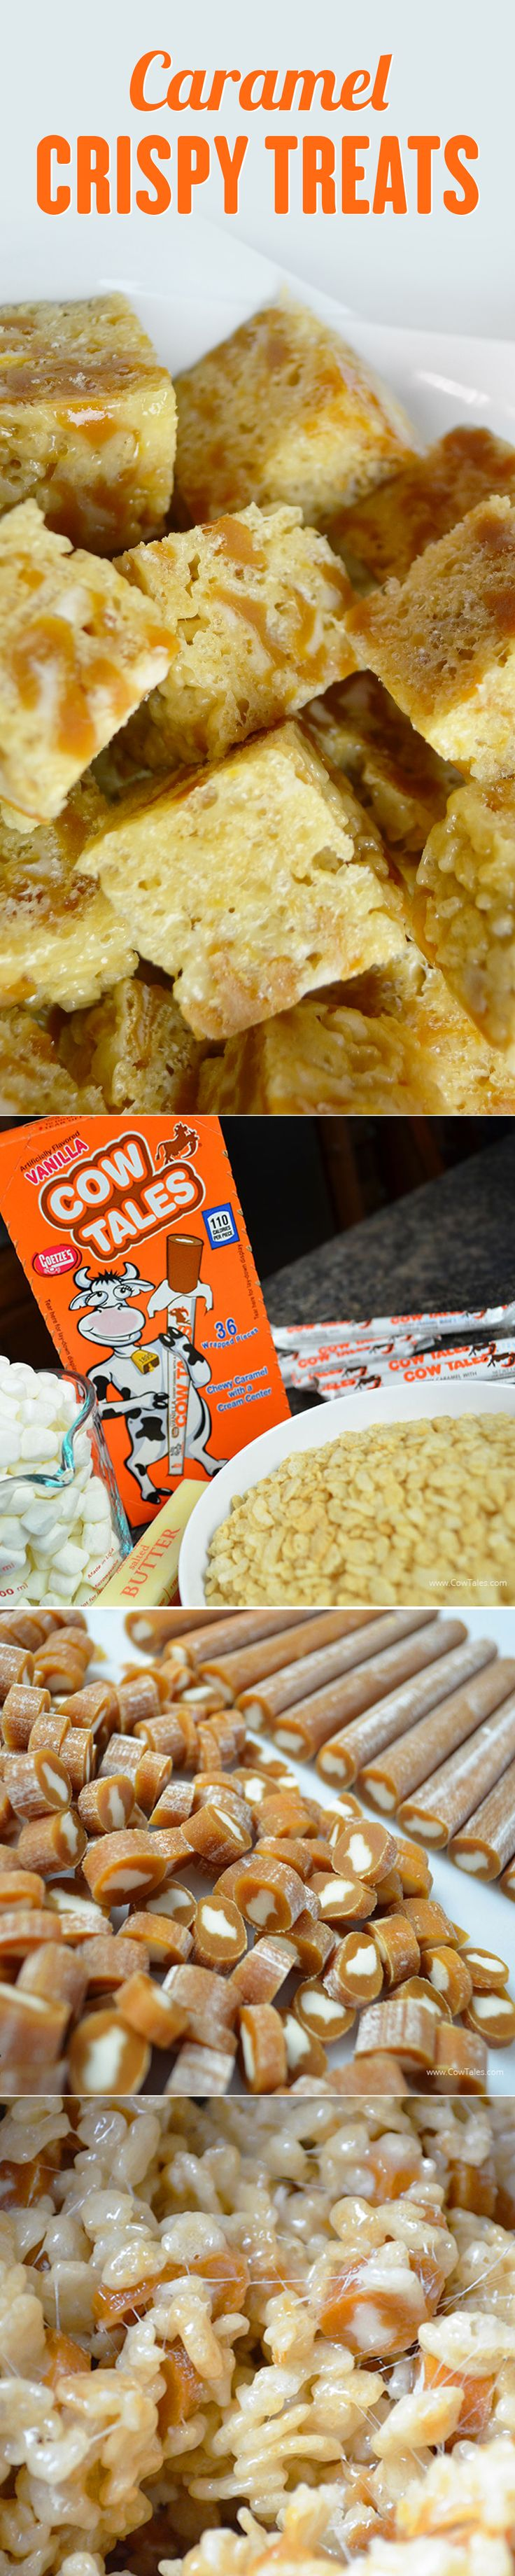 These are crazy good  Add Cow Tales to homemade crispy treats for an unbelievable crunchy caramel treat